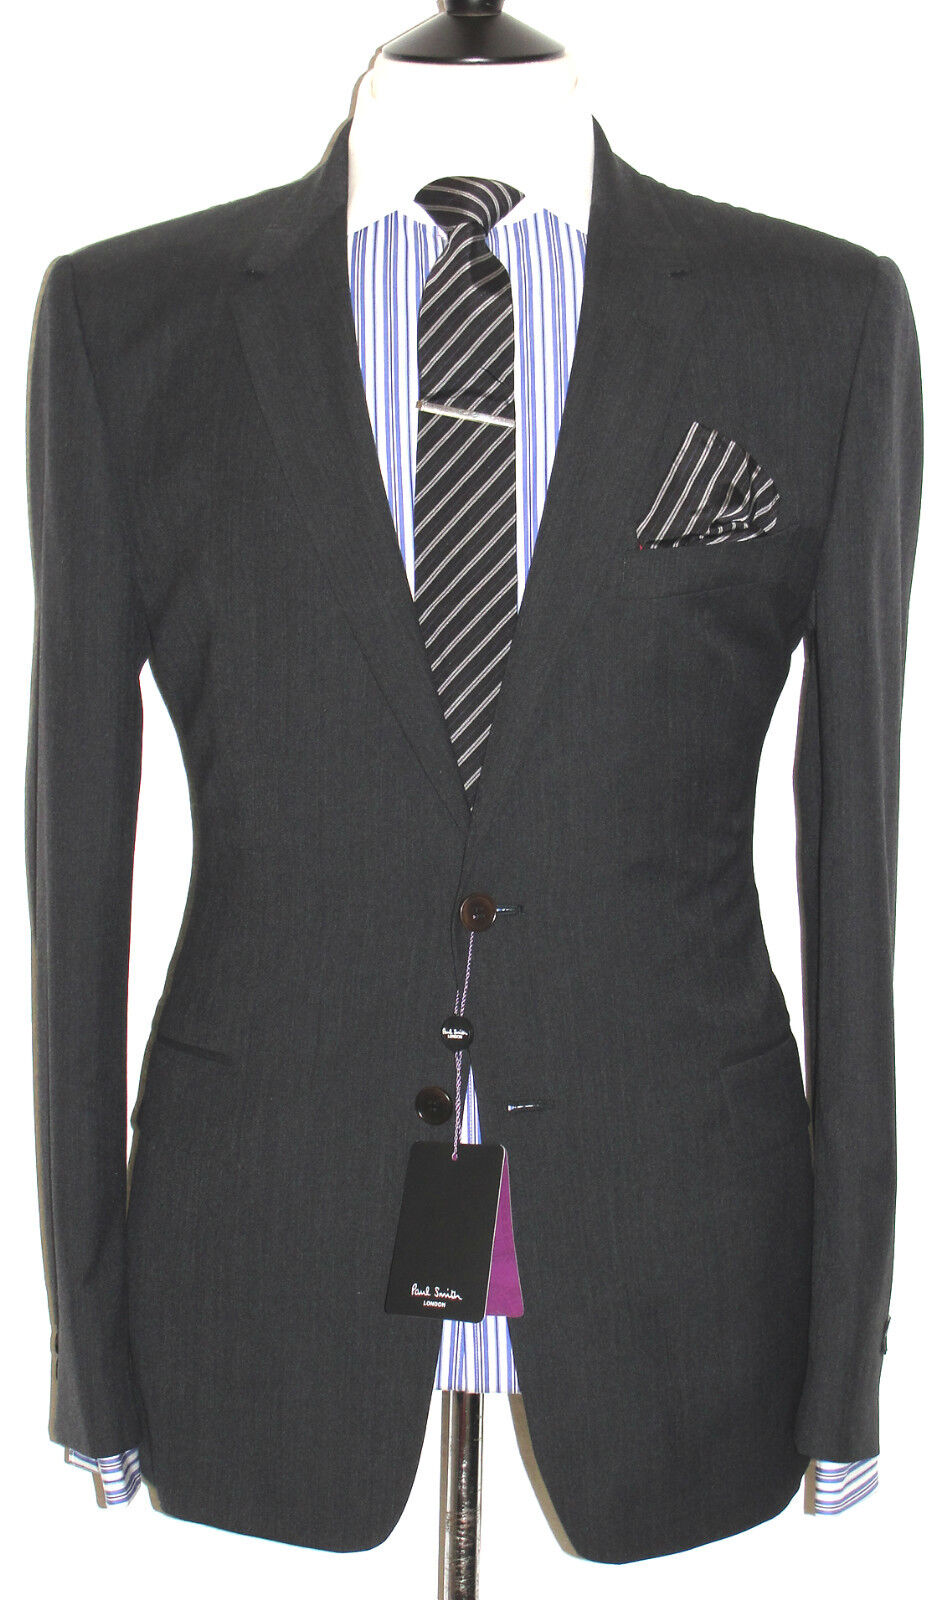 BNWT TAILOR-MADE PAUL SMITH THE REGENT  CHARCOAL DARK grau SUIT 46R W40